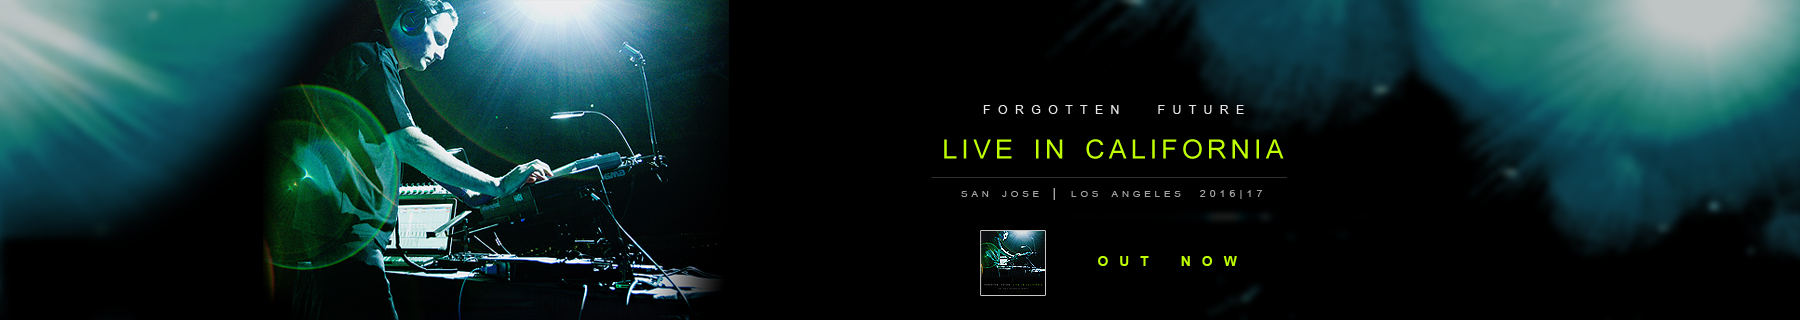 Live-in-CA-jd-website-banner